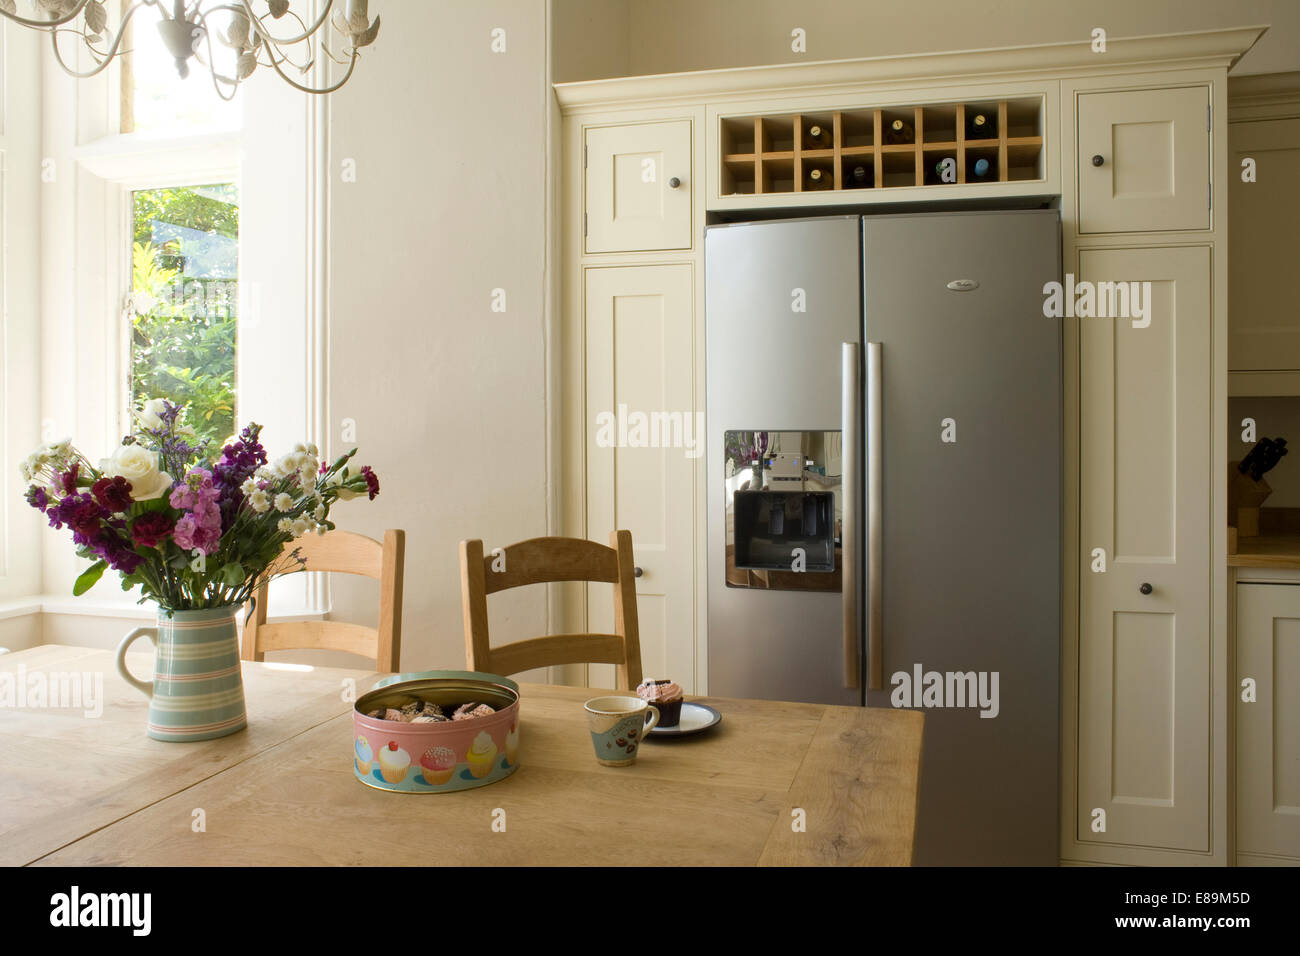 Vase of summer flowers on table in country kitchen with wine storage above American style fridge freezer Stock Photo